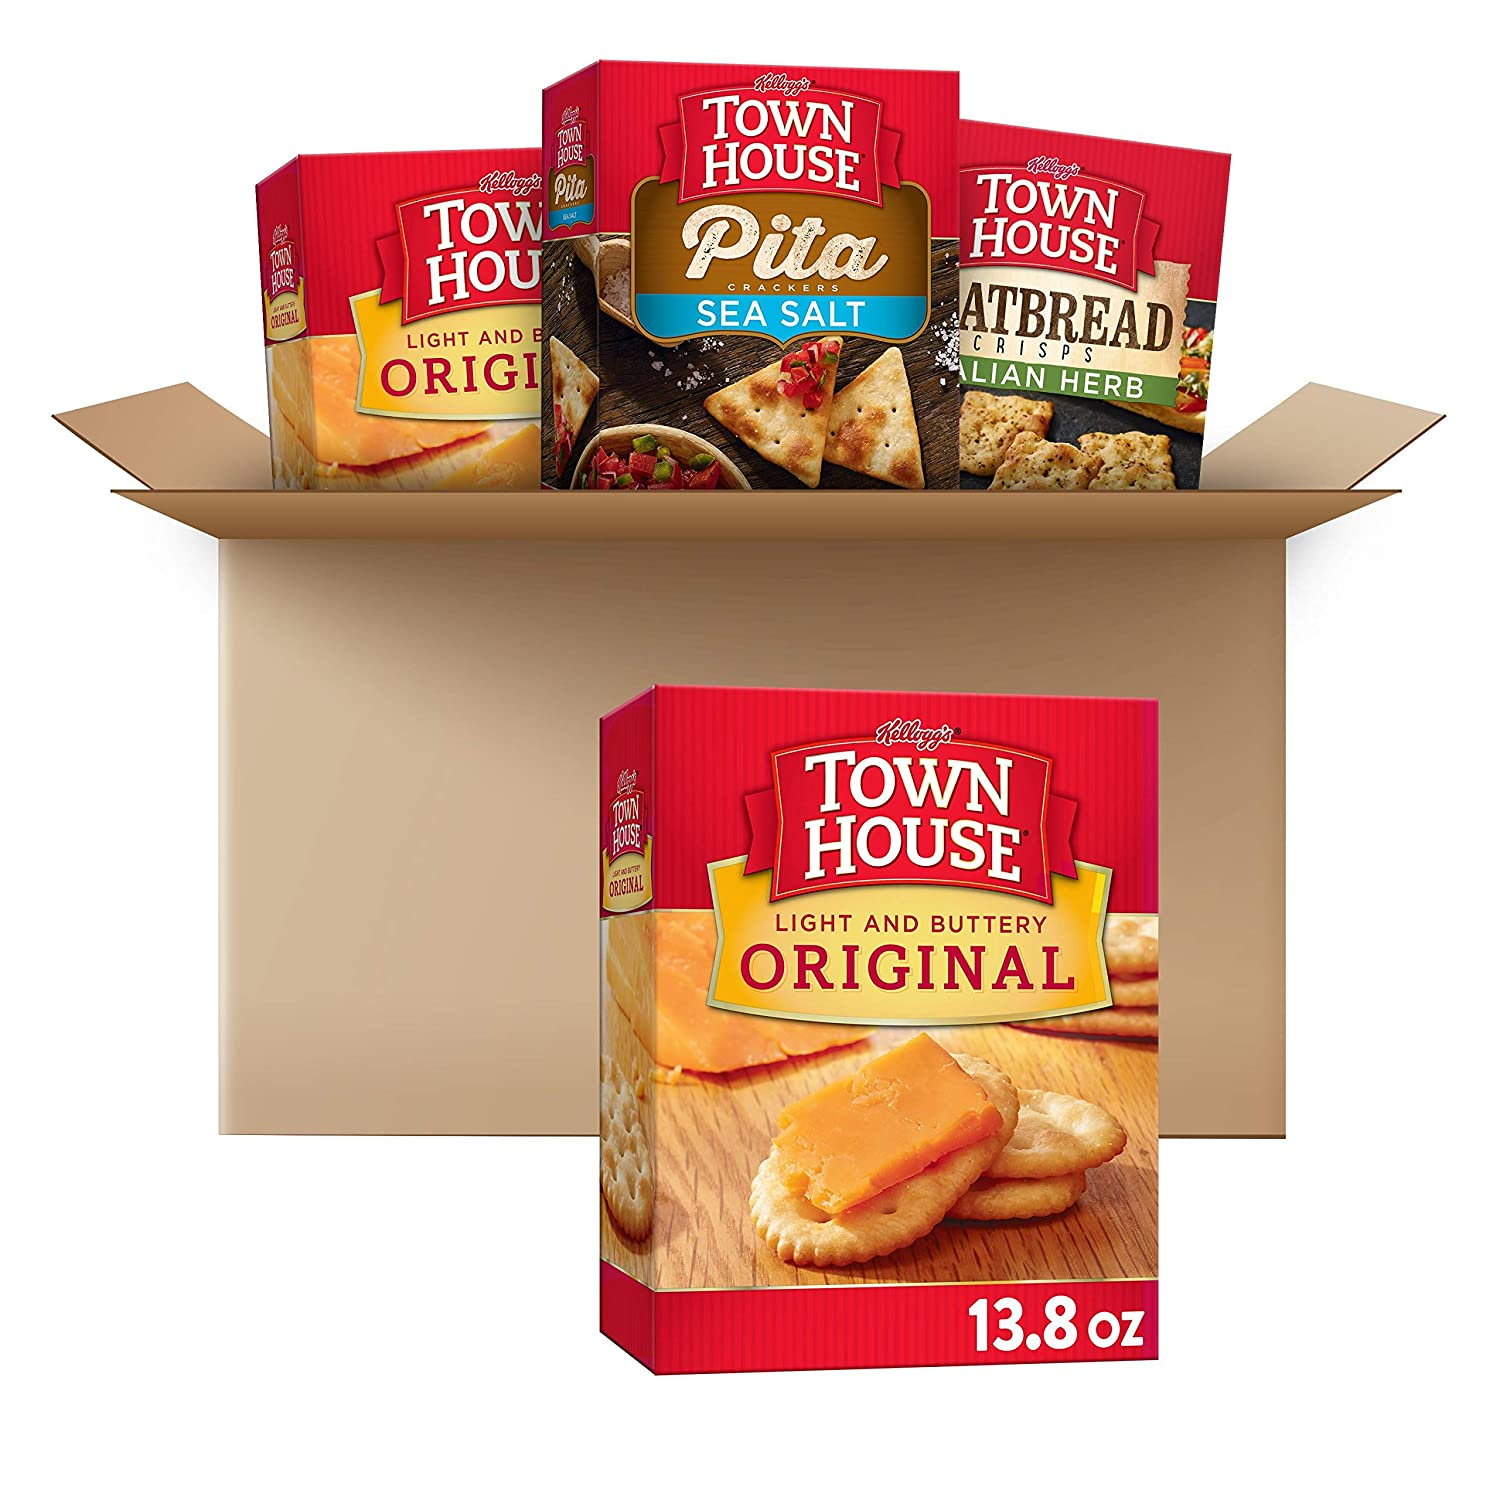 Kellogg's Town House Crackers, 3 Flavors Variety Pack, Ready to Dip Snacks (4 Count Case), 46.6 Ounce (Pack of 1)